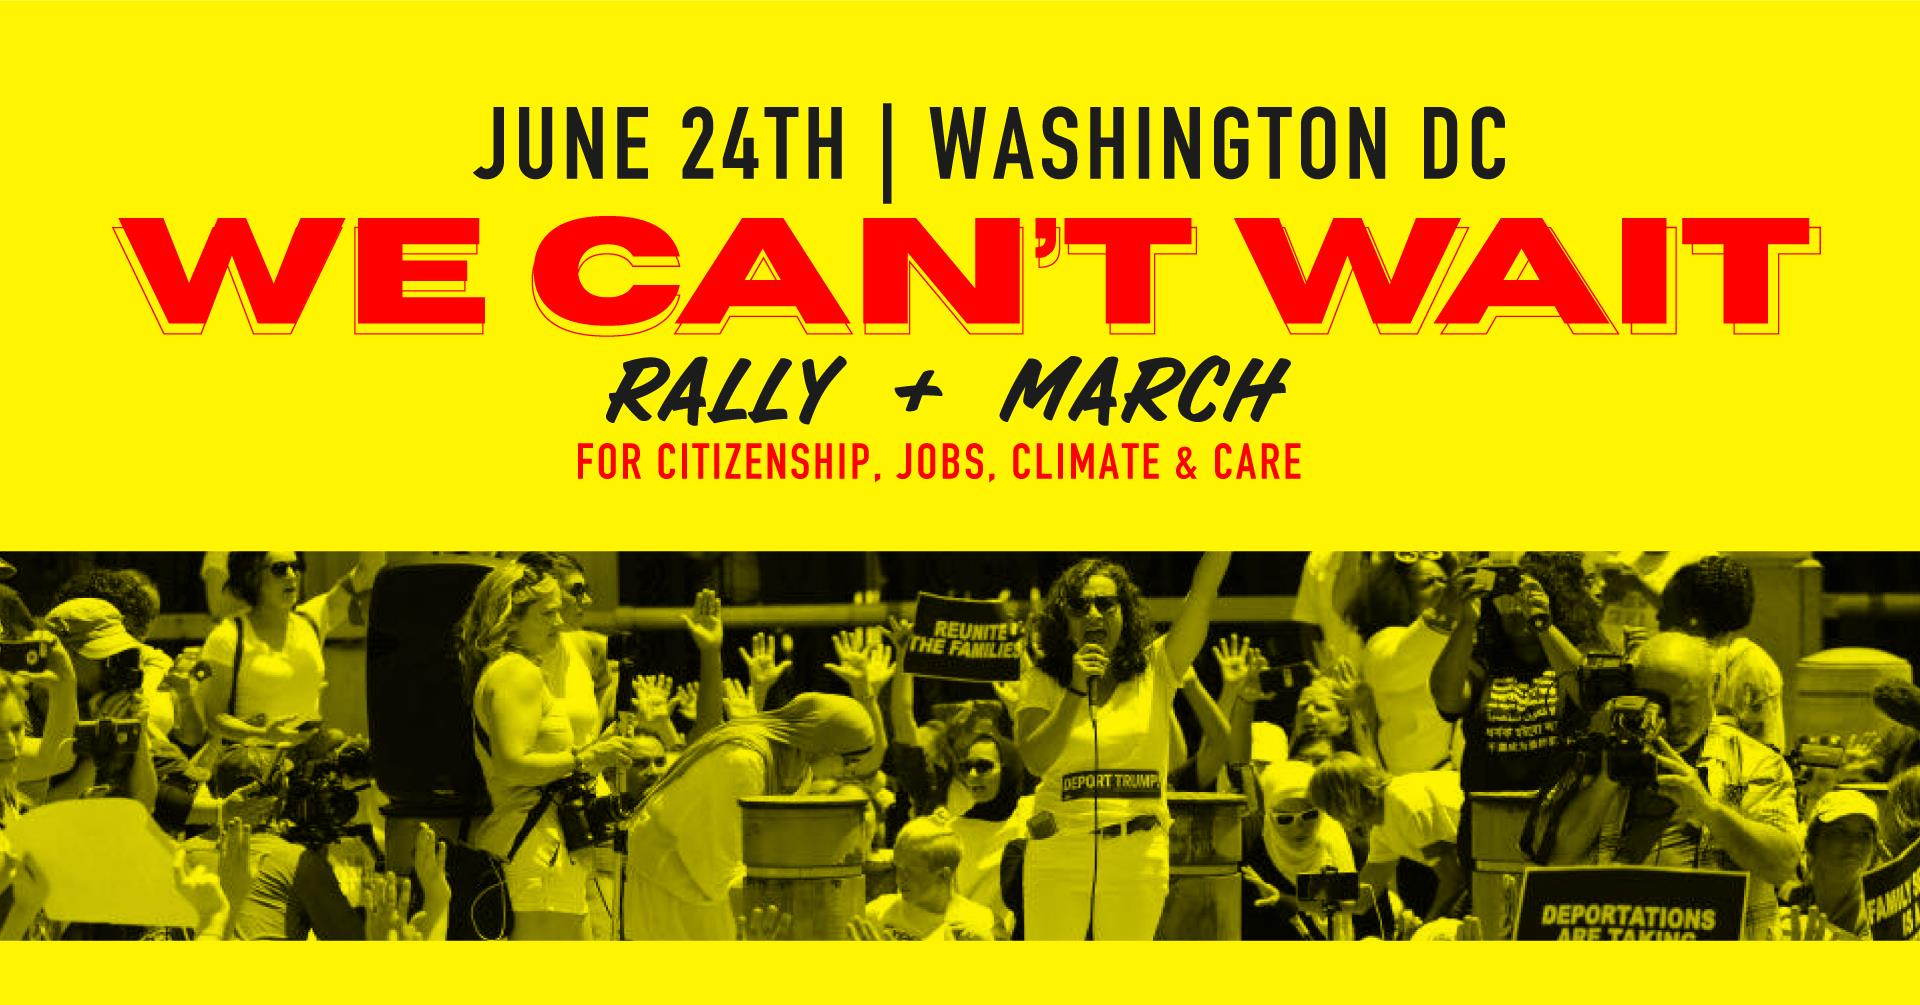 Join the #WeCantWait action on June 24